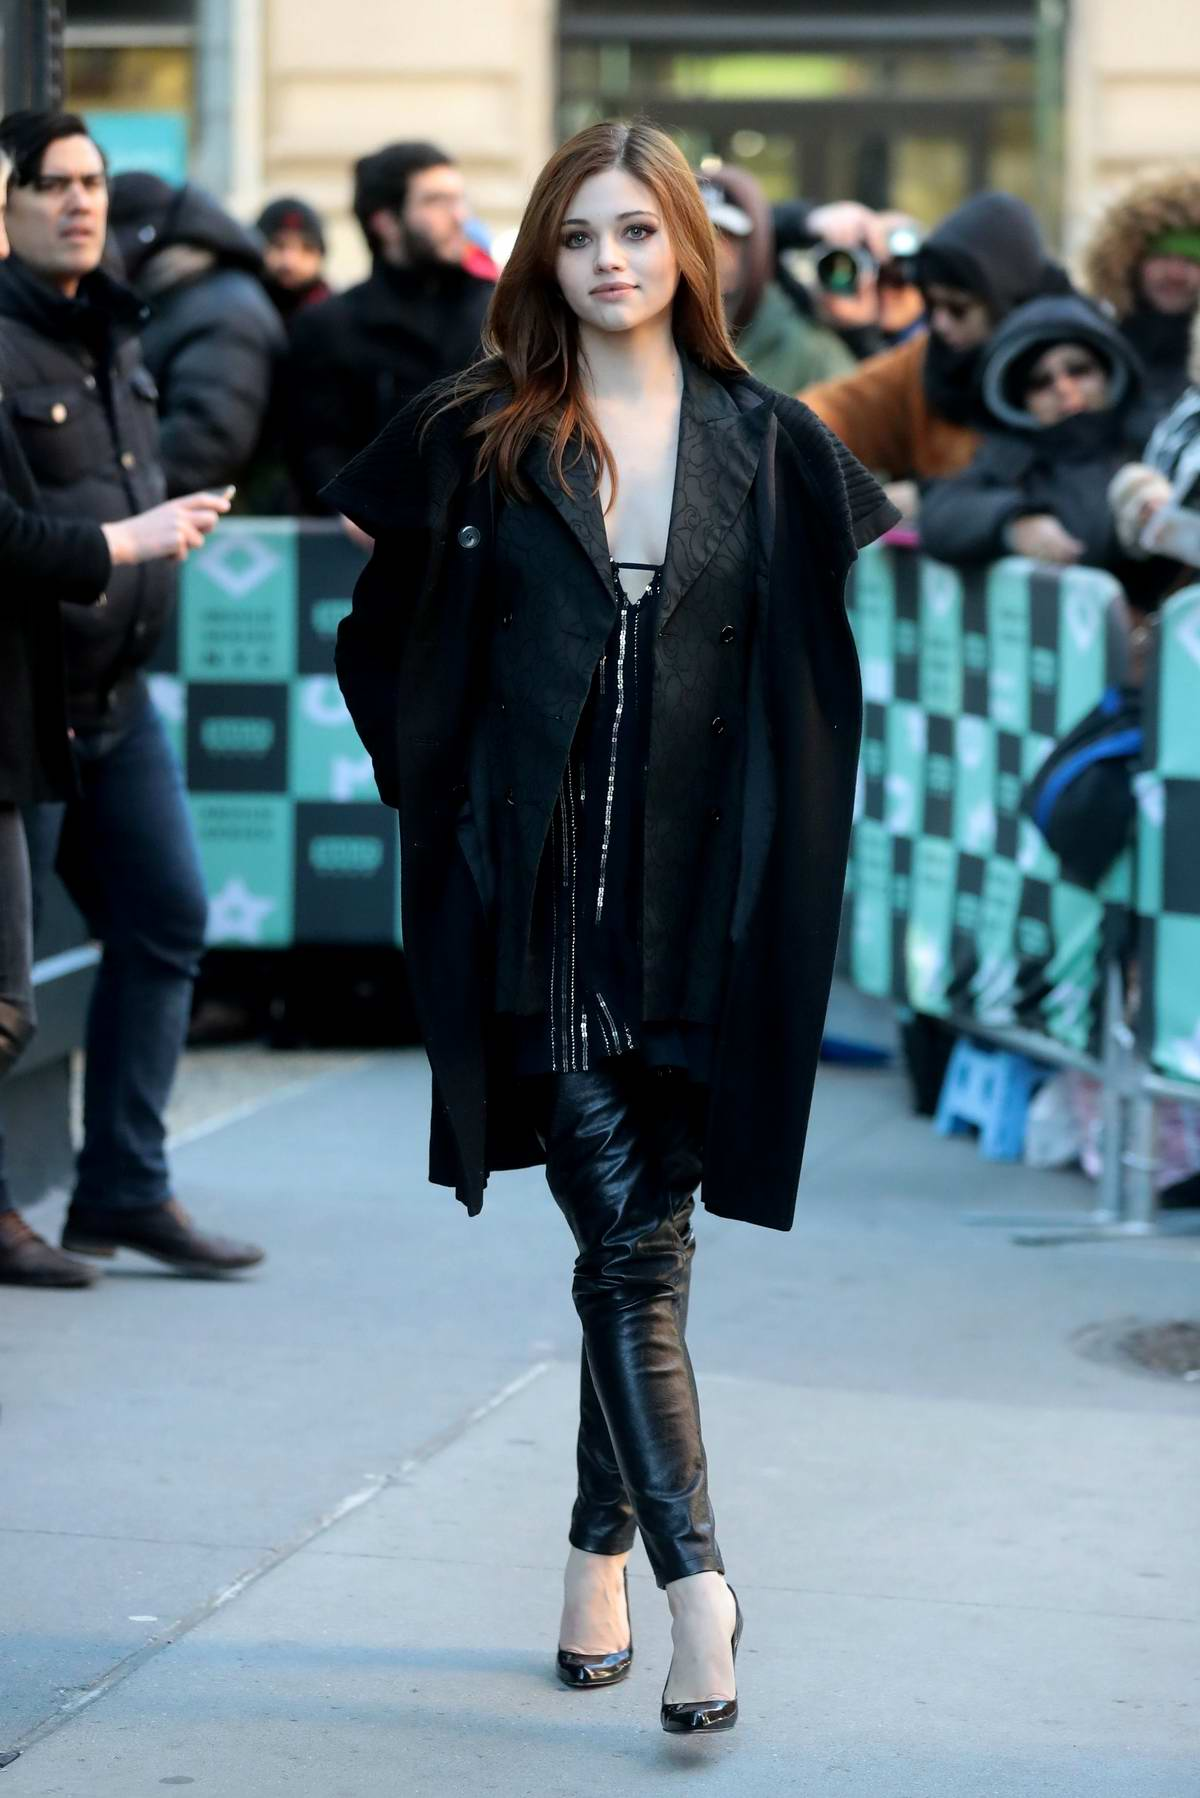 India Eisley promotes 'I Am The Night' at AOL Build Series in New York City